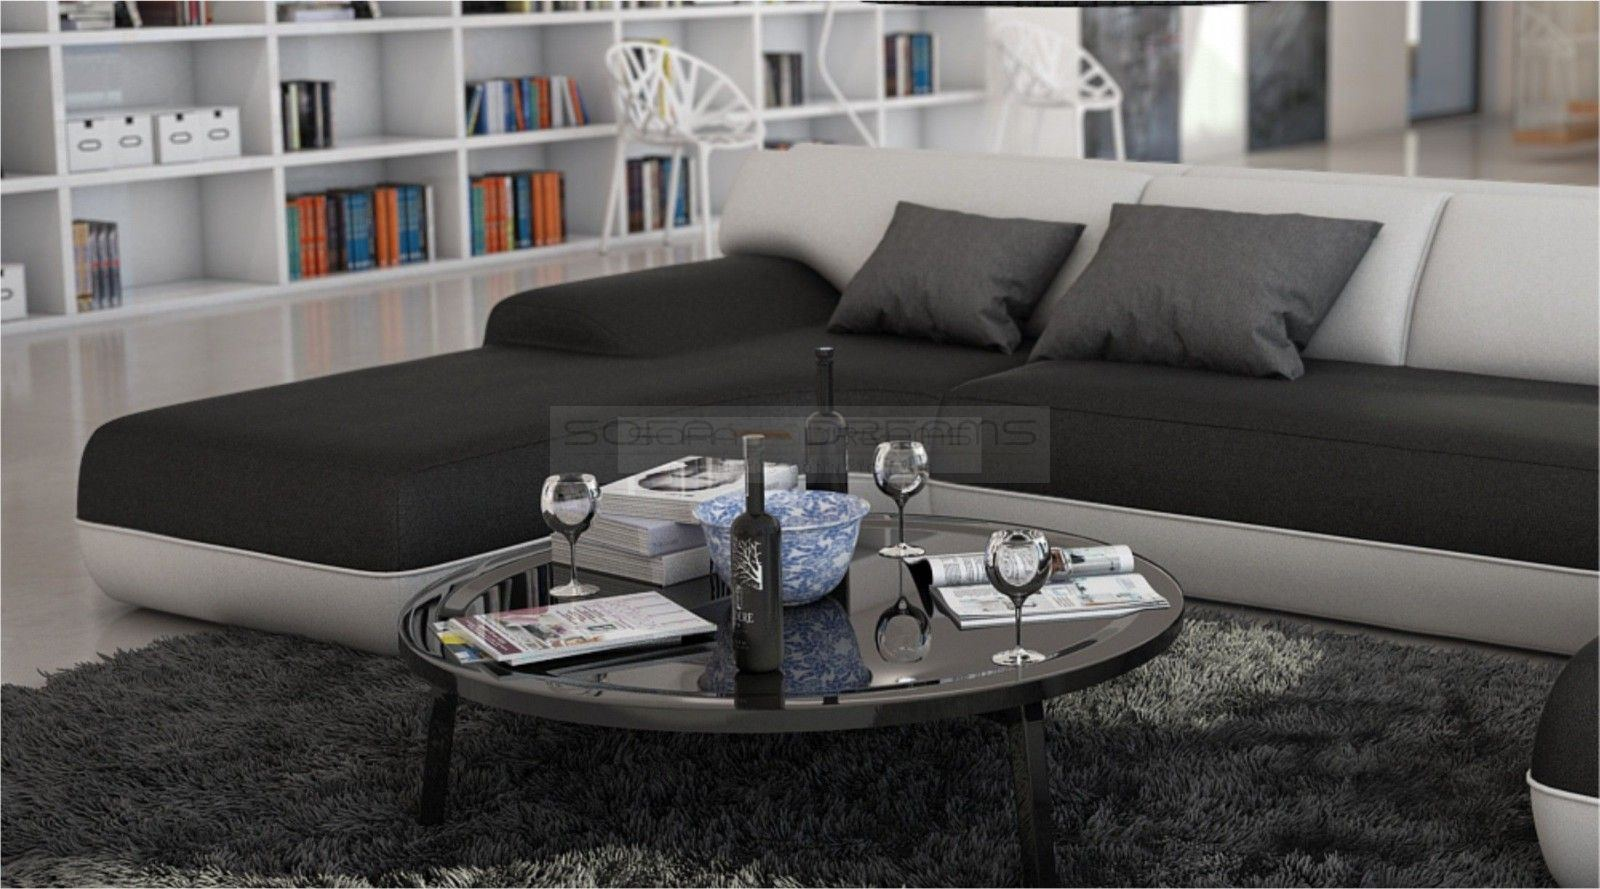 alcantara sofa sofa upholstered in alcantara and other areas of lication thesofa. Black Bedroom Furniture Sets. Home Design Ideas